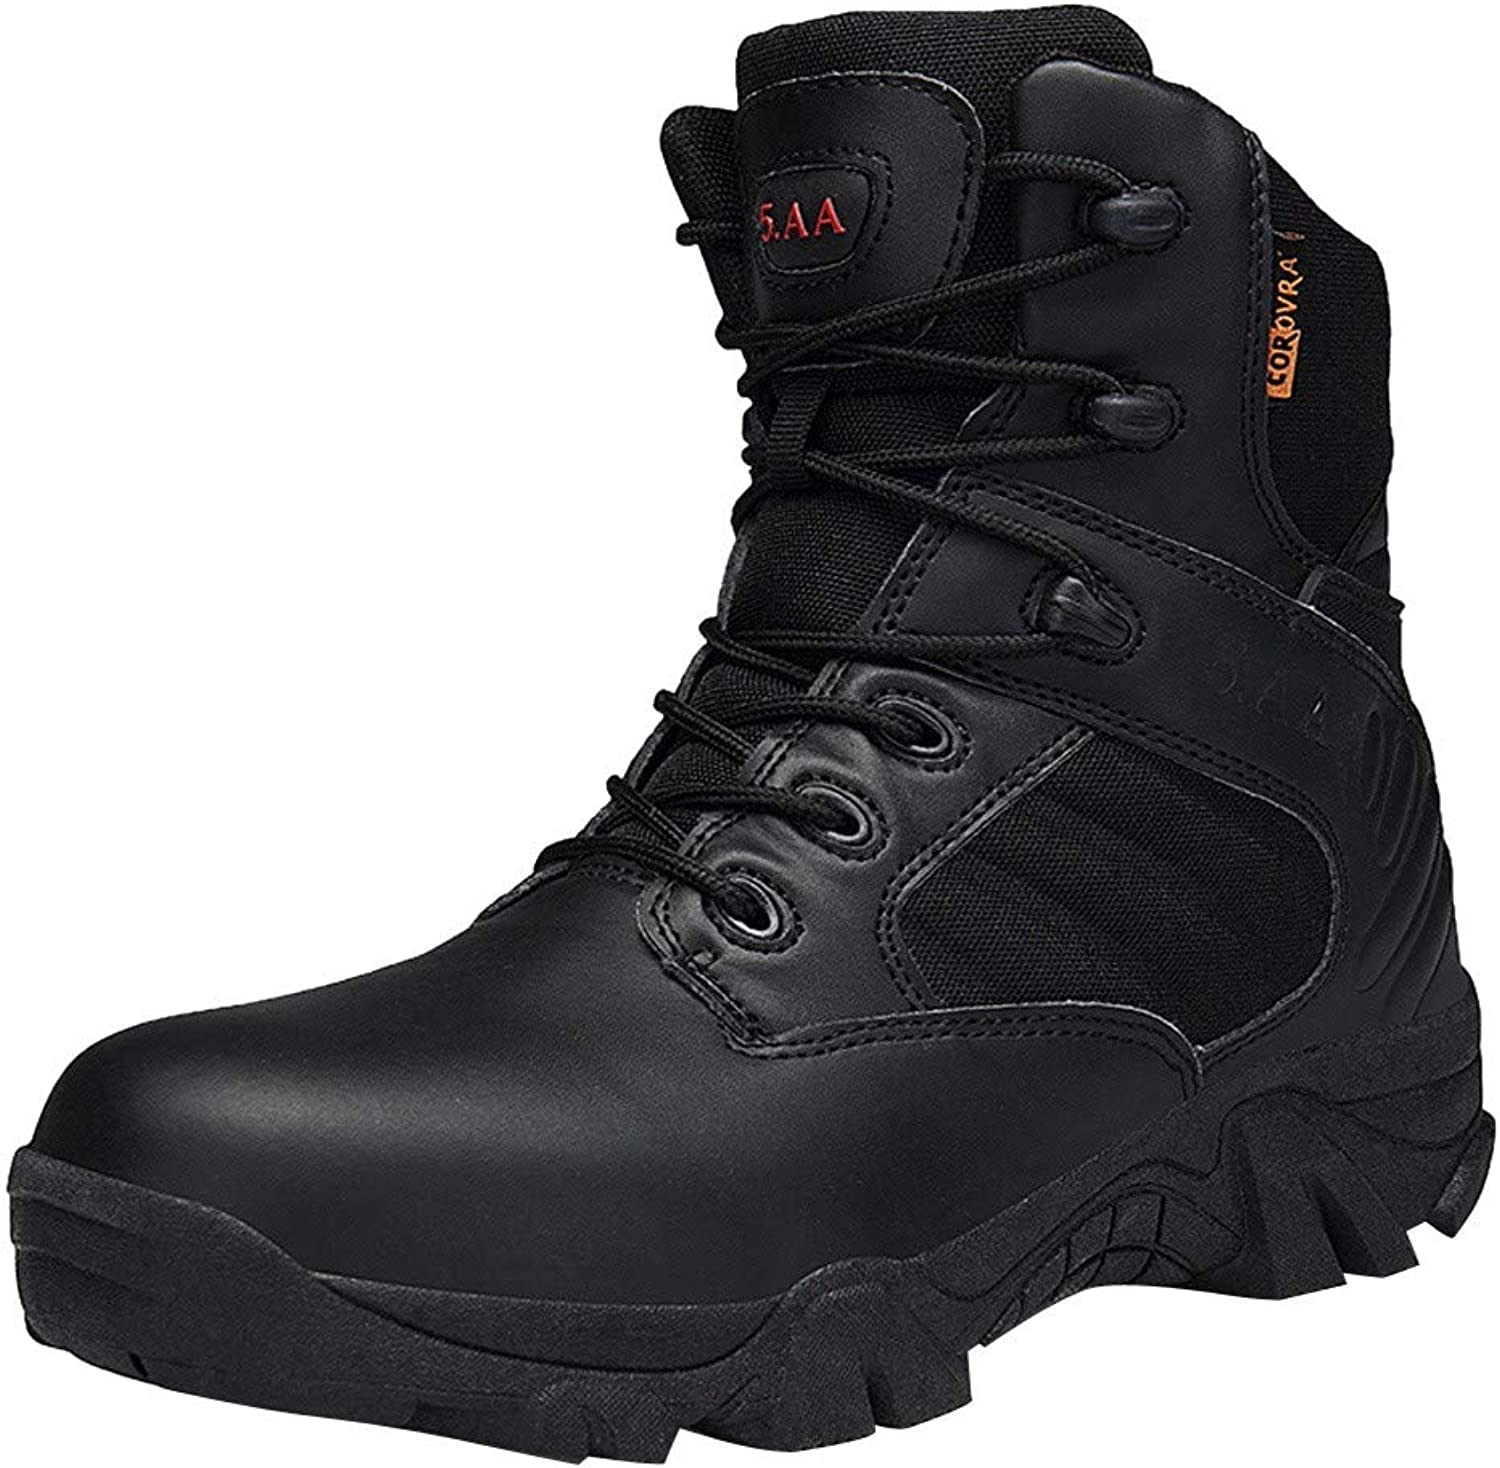 Men Wear-Resisting Non-Slip Outdoor Climbing Hiking Boots Combat Military Boots RedBrowm